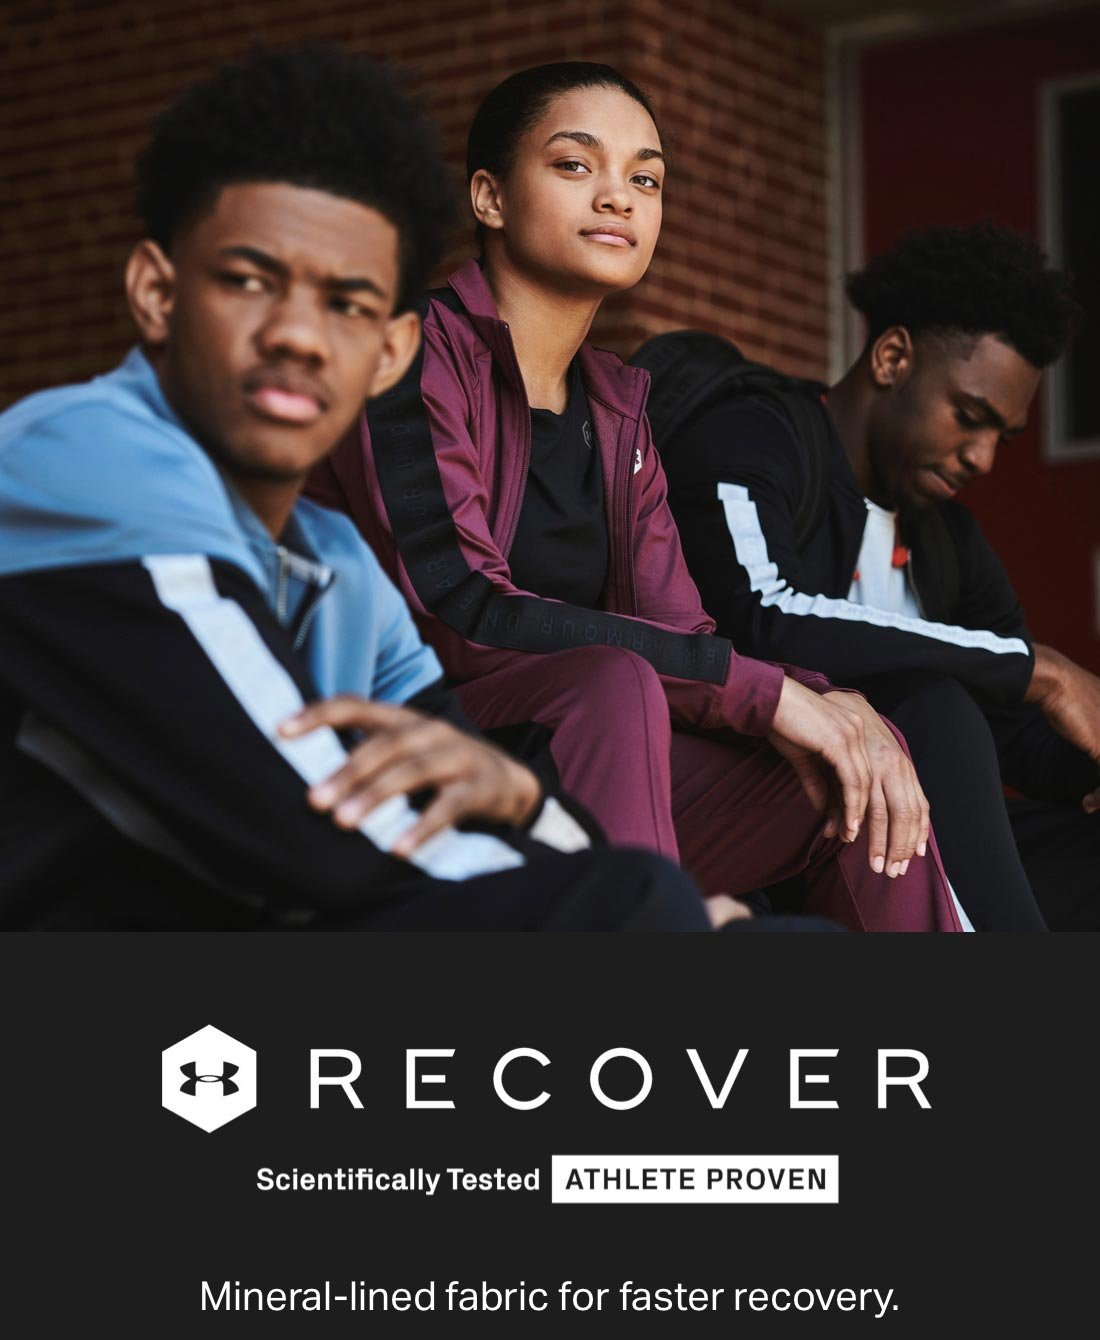 UA RECOVER - Scientifically Tested ATHLETE PROVEN - Mineral-lined fabric for faster recovery.